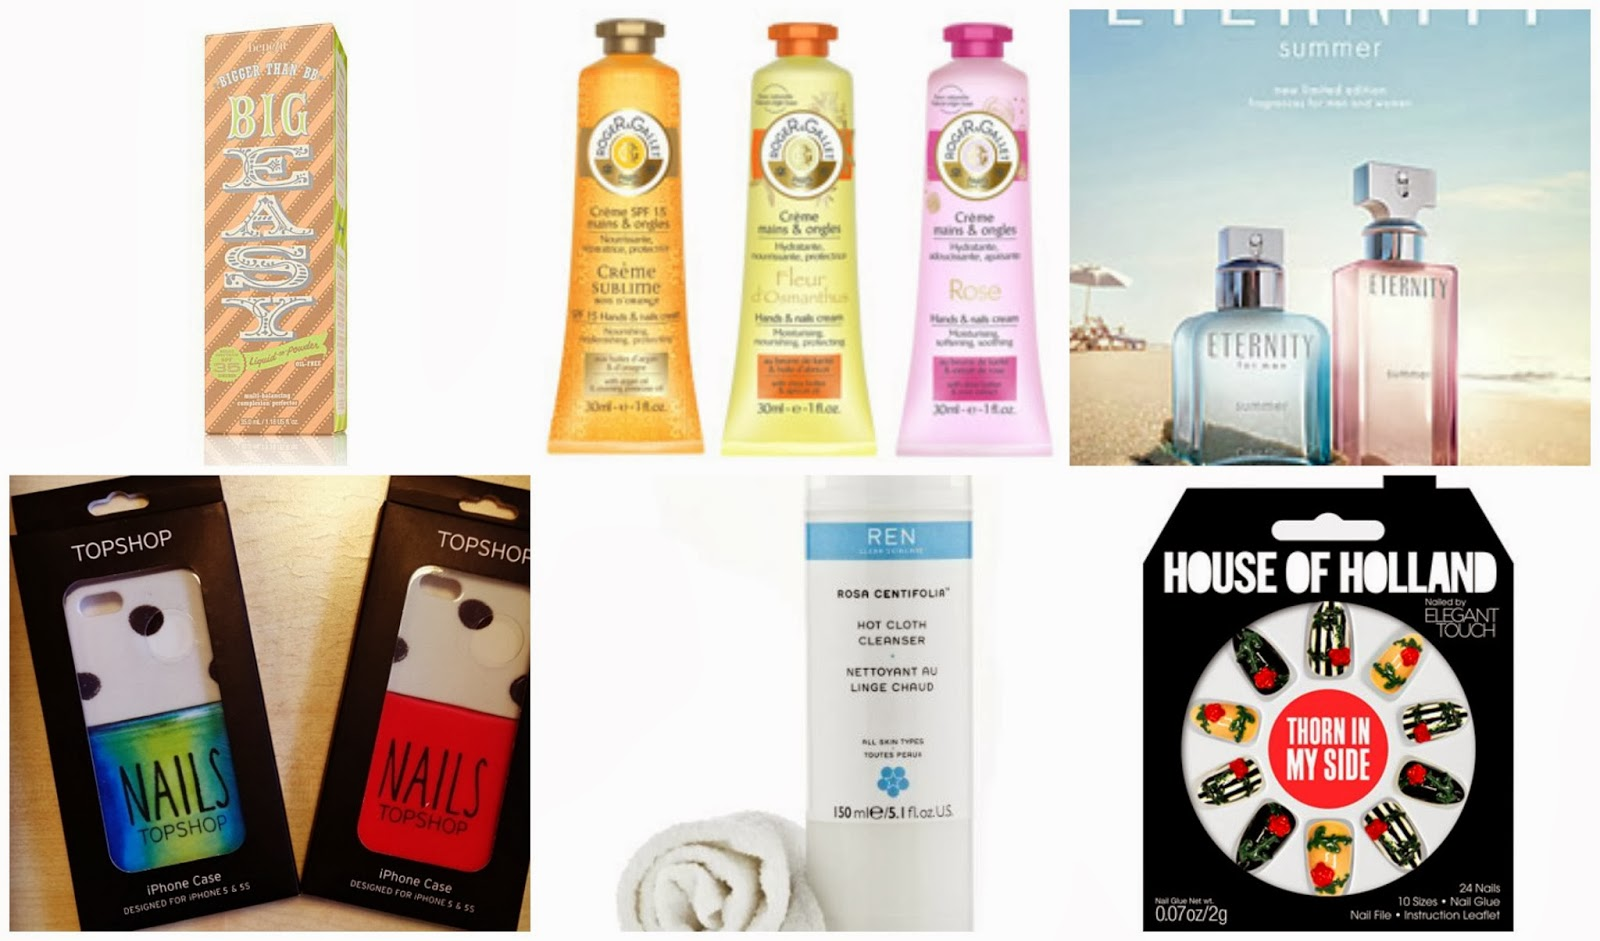 The Daily Beauty Report (12.02.14)